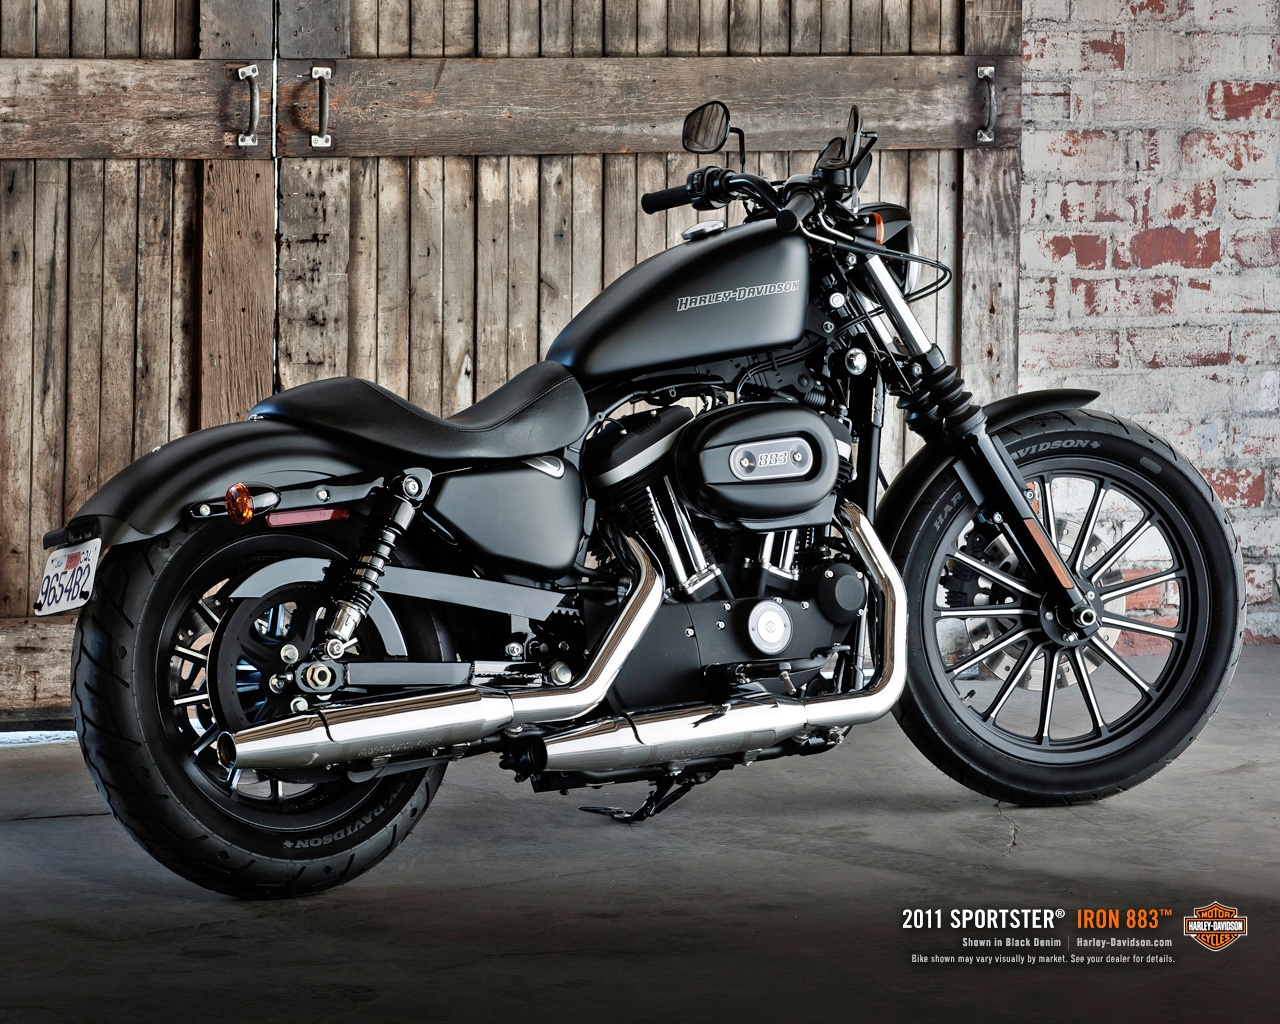 Harley Davidson Bikes Wallpapers Hd Posted By Samantha Simpson